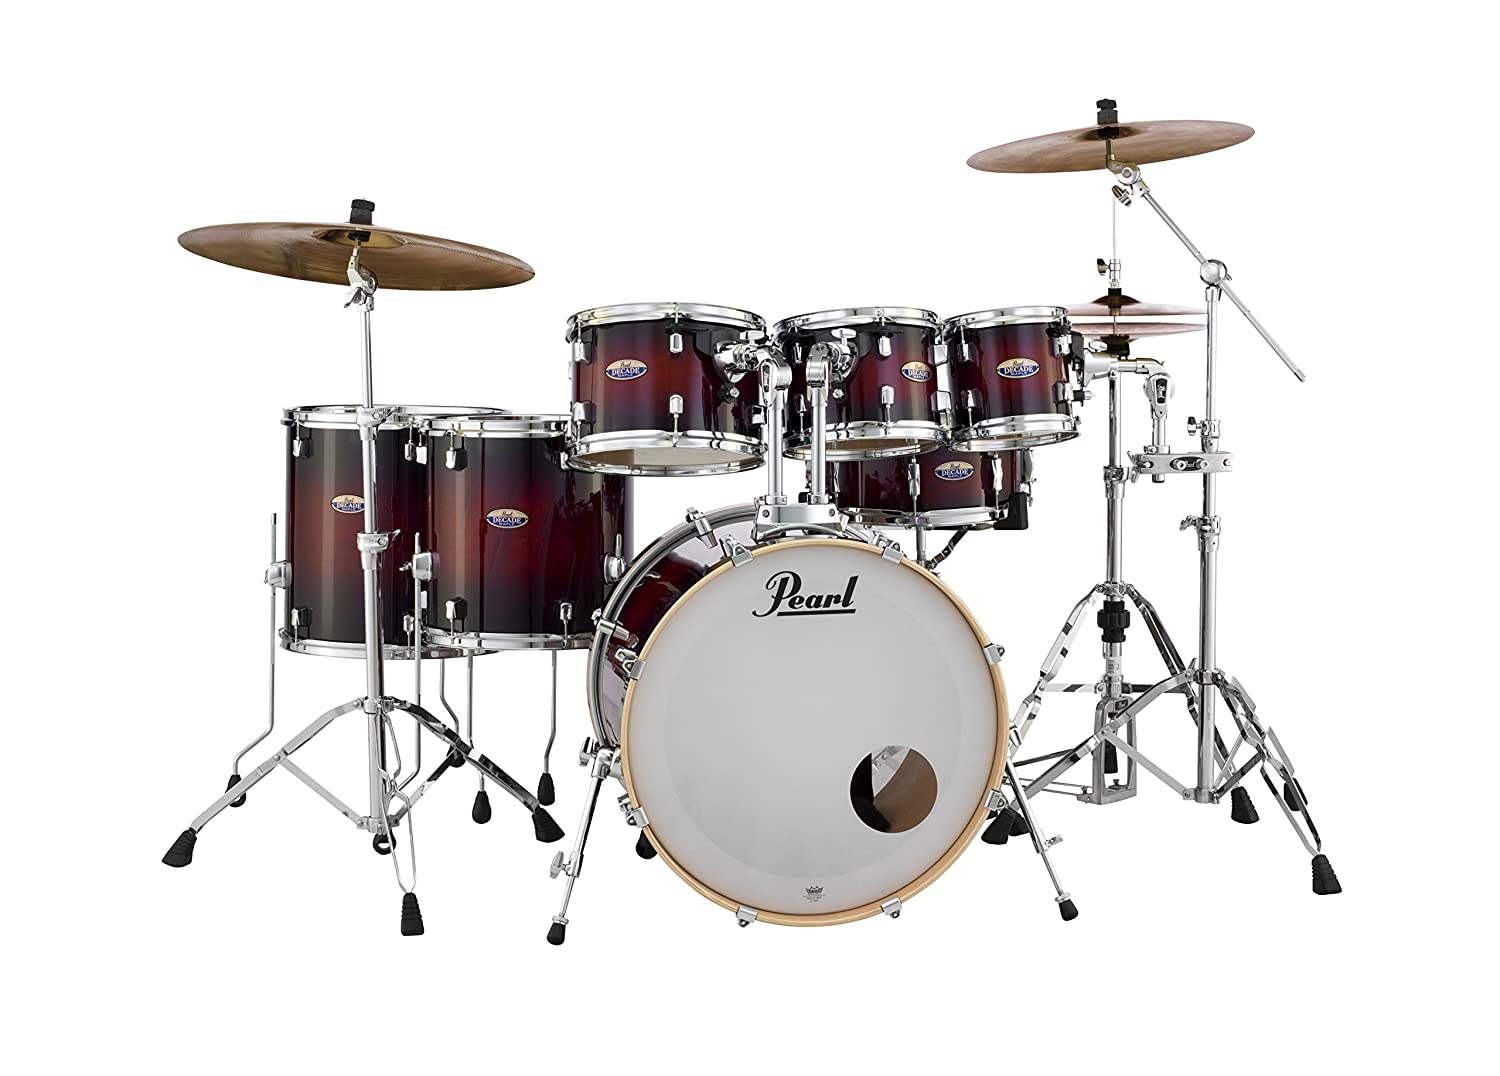 Buying Drum Set : 5 best intermediate drum set reviews buying guide 2018 ~ Vivirlamusica.com Haus und Dekorationen